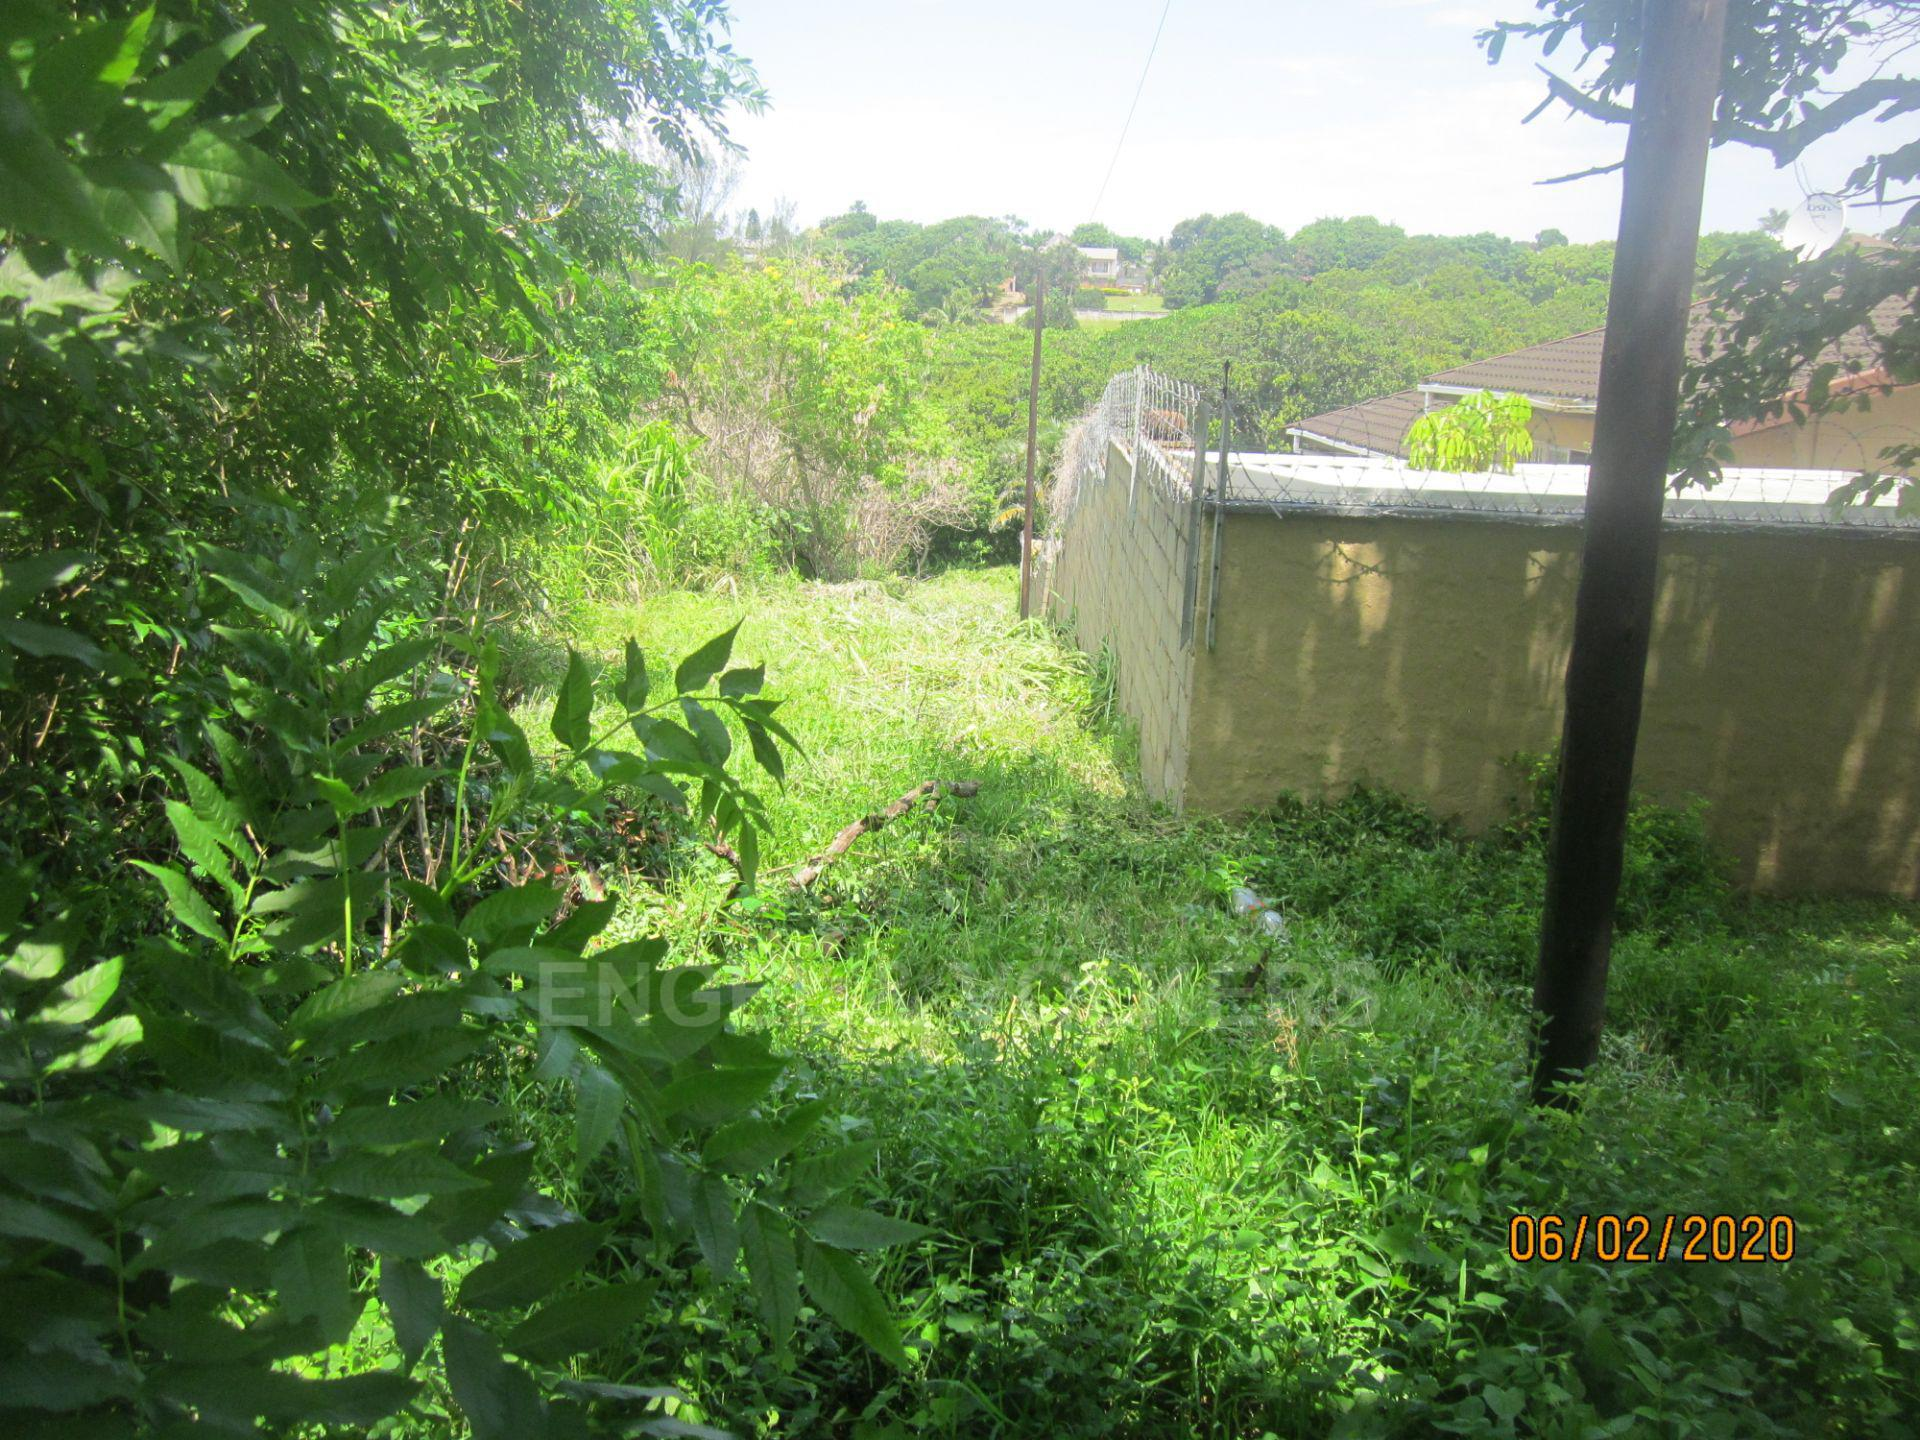 Land in Uvongo - 025 Second plot and adjacent complex wall.JPG